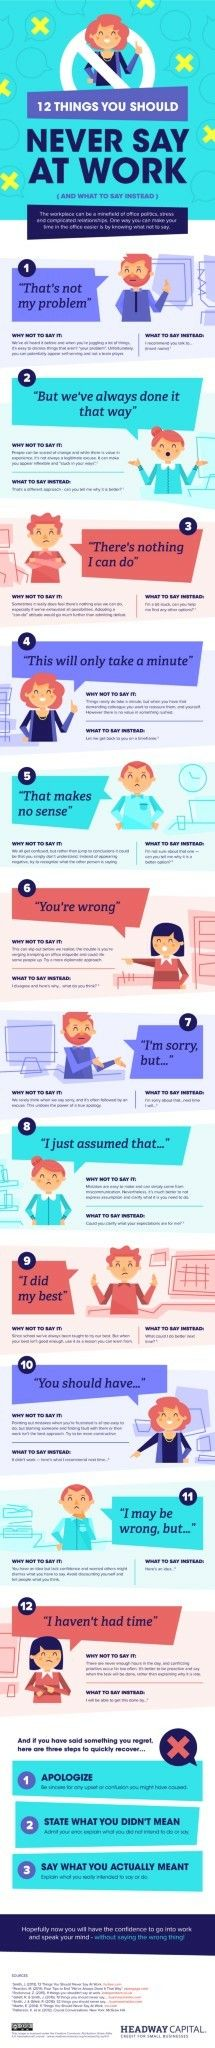 What not to say on the job